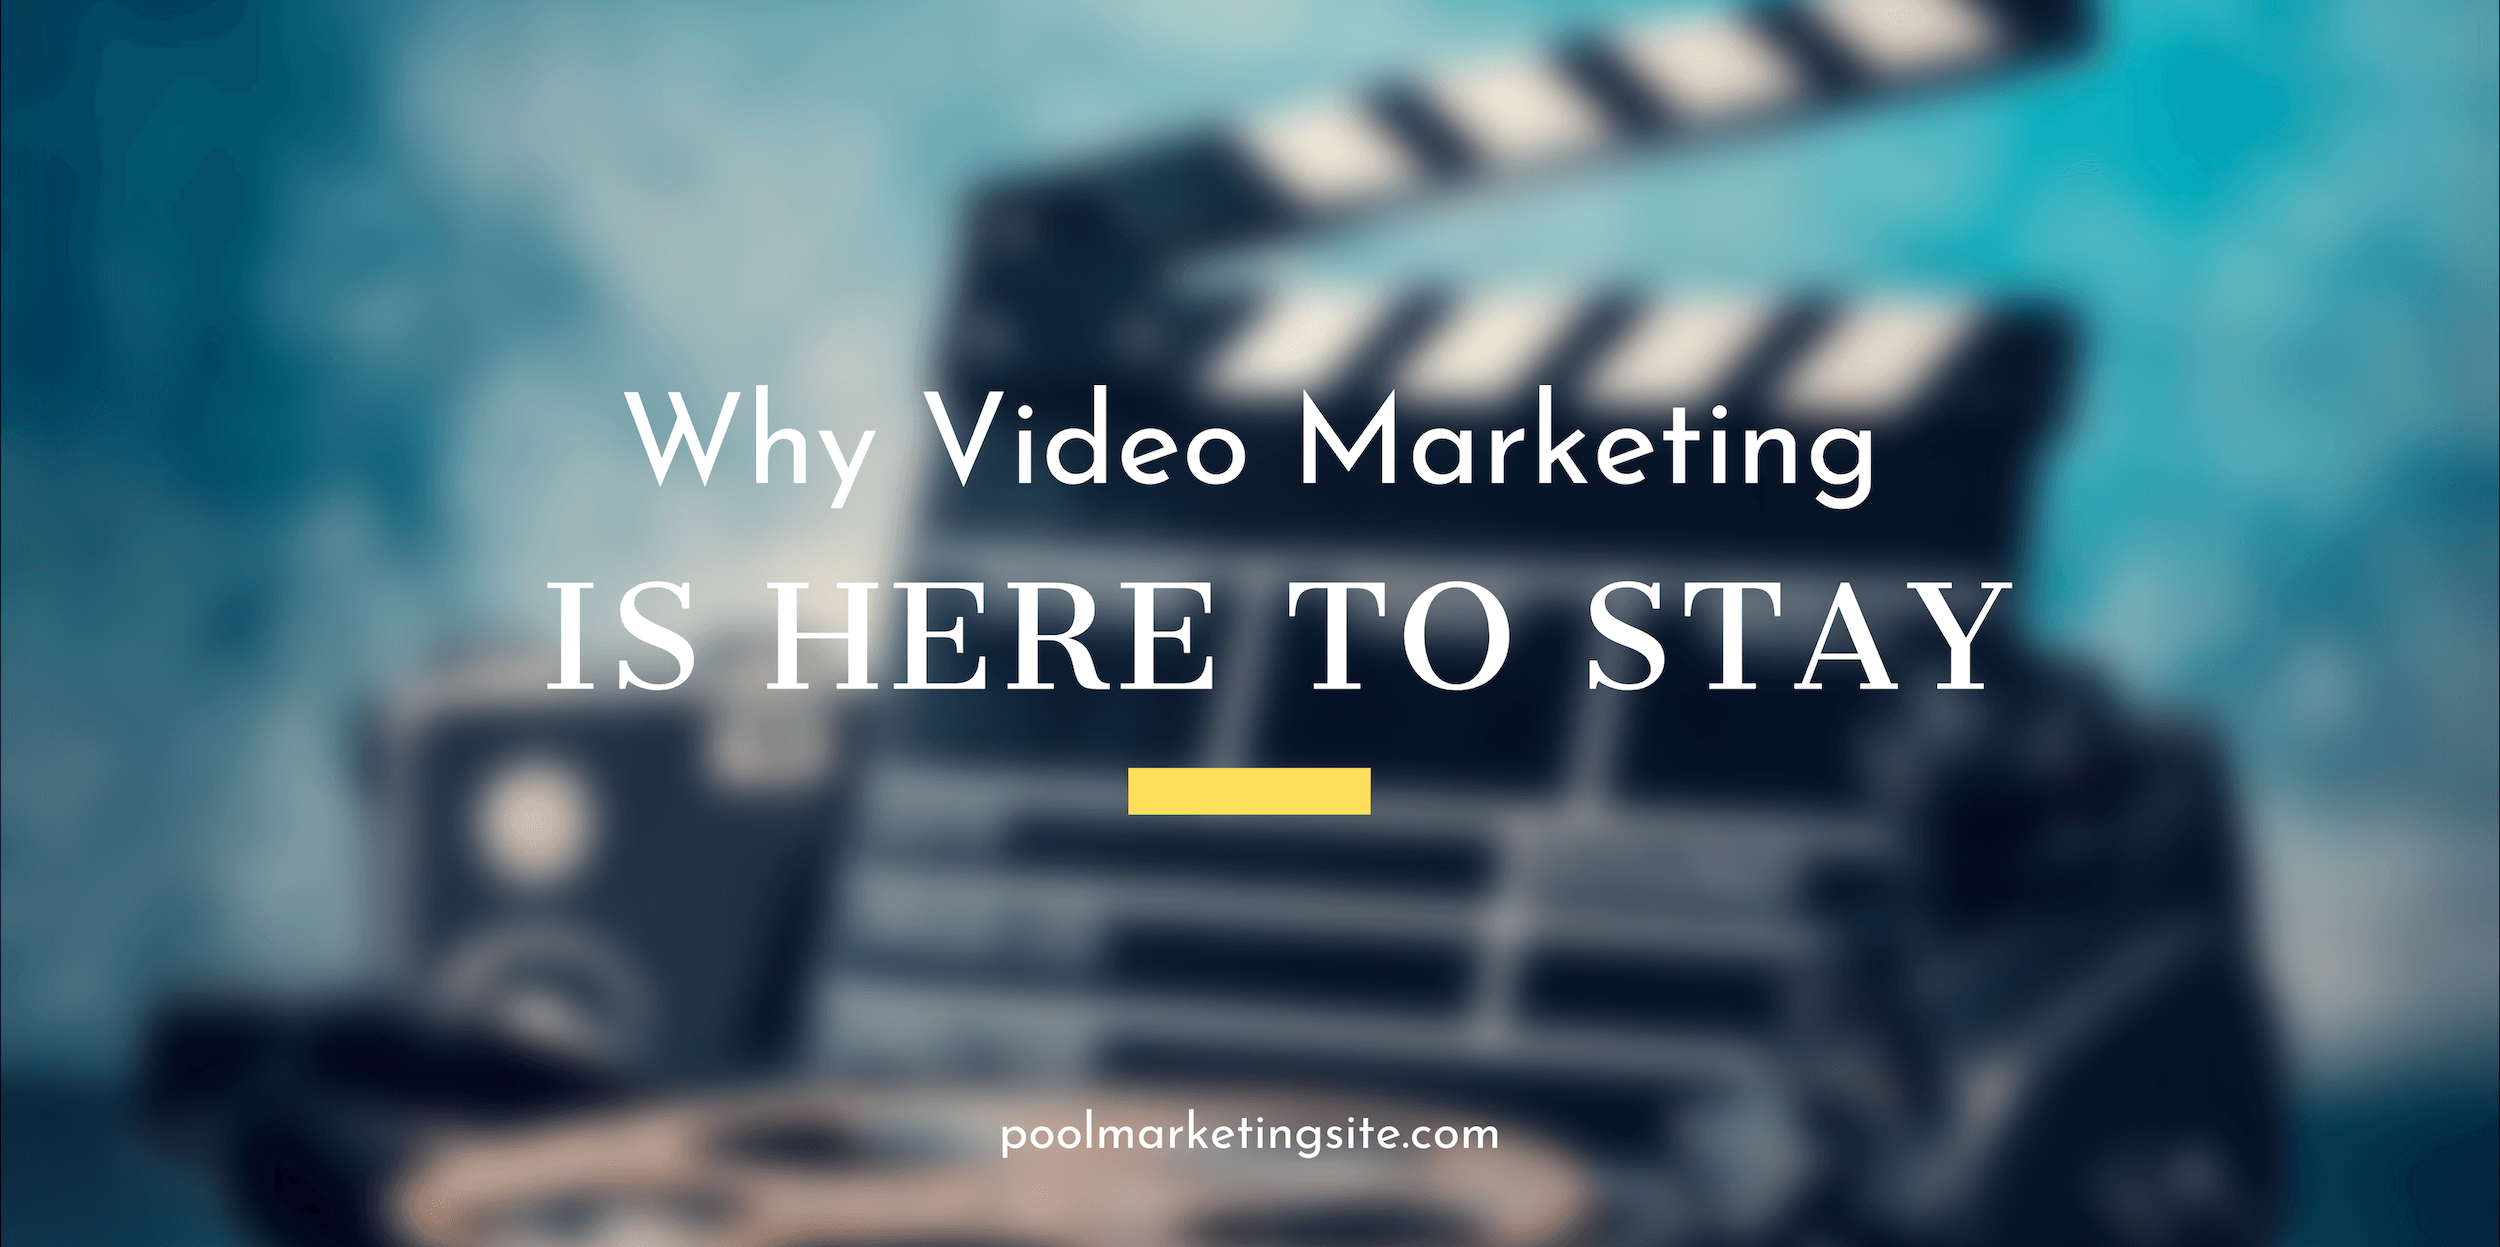 Why Video Marketing is Here to Stay